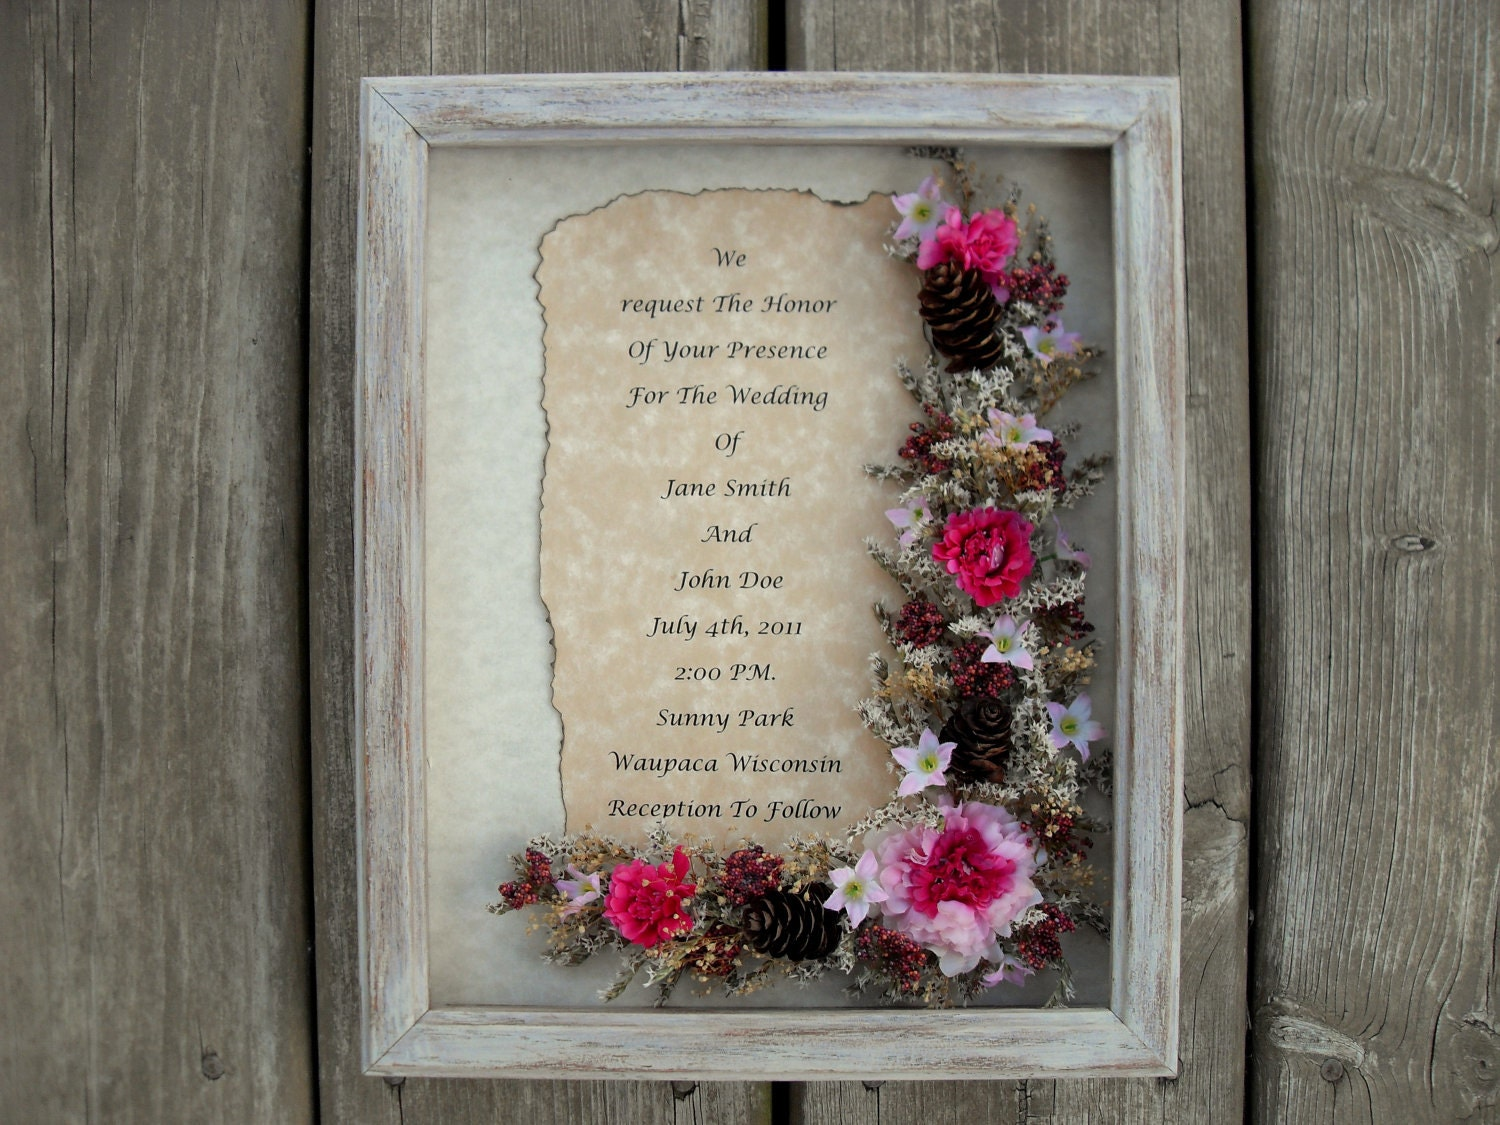 Gifts Using Wedding Invitation: Items Similar To Custom Wedding Invitation Shadow Box